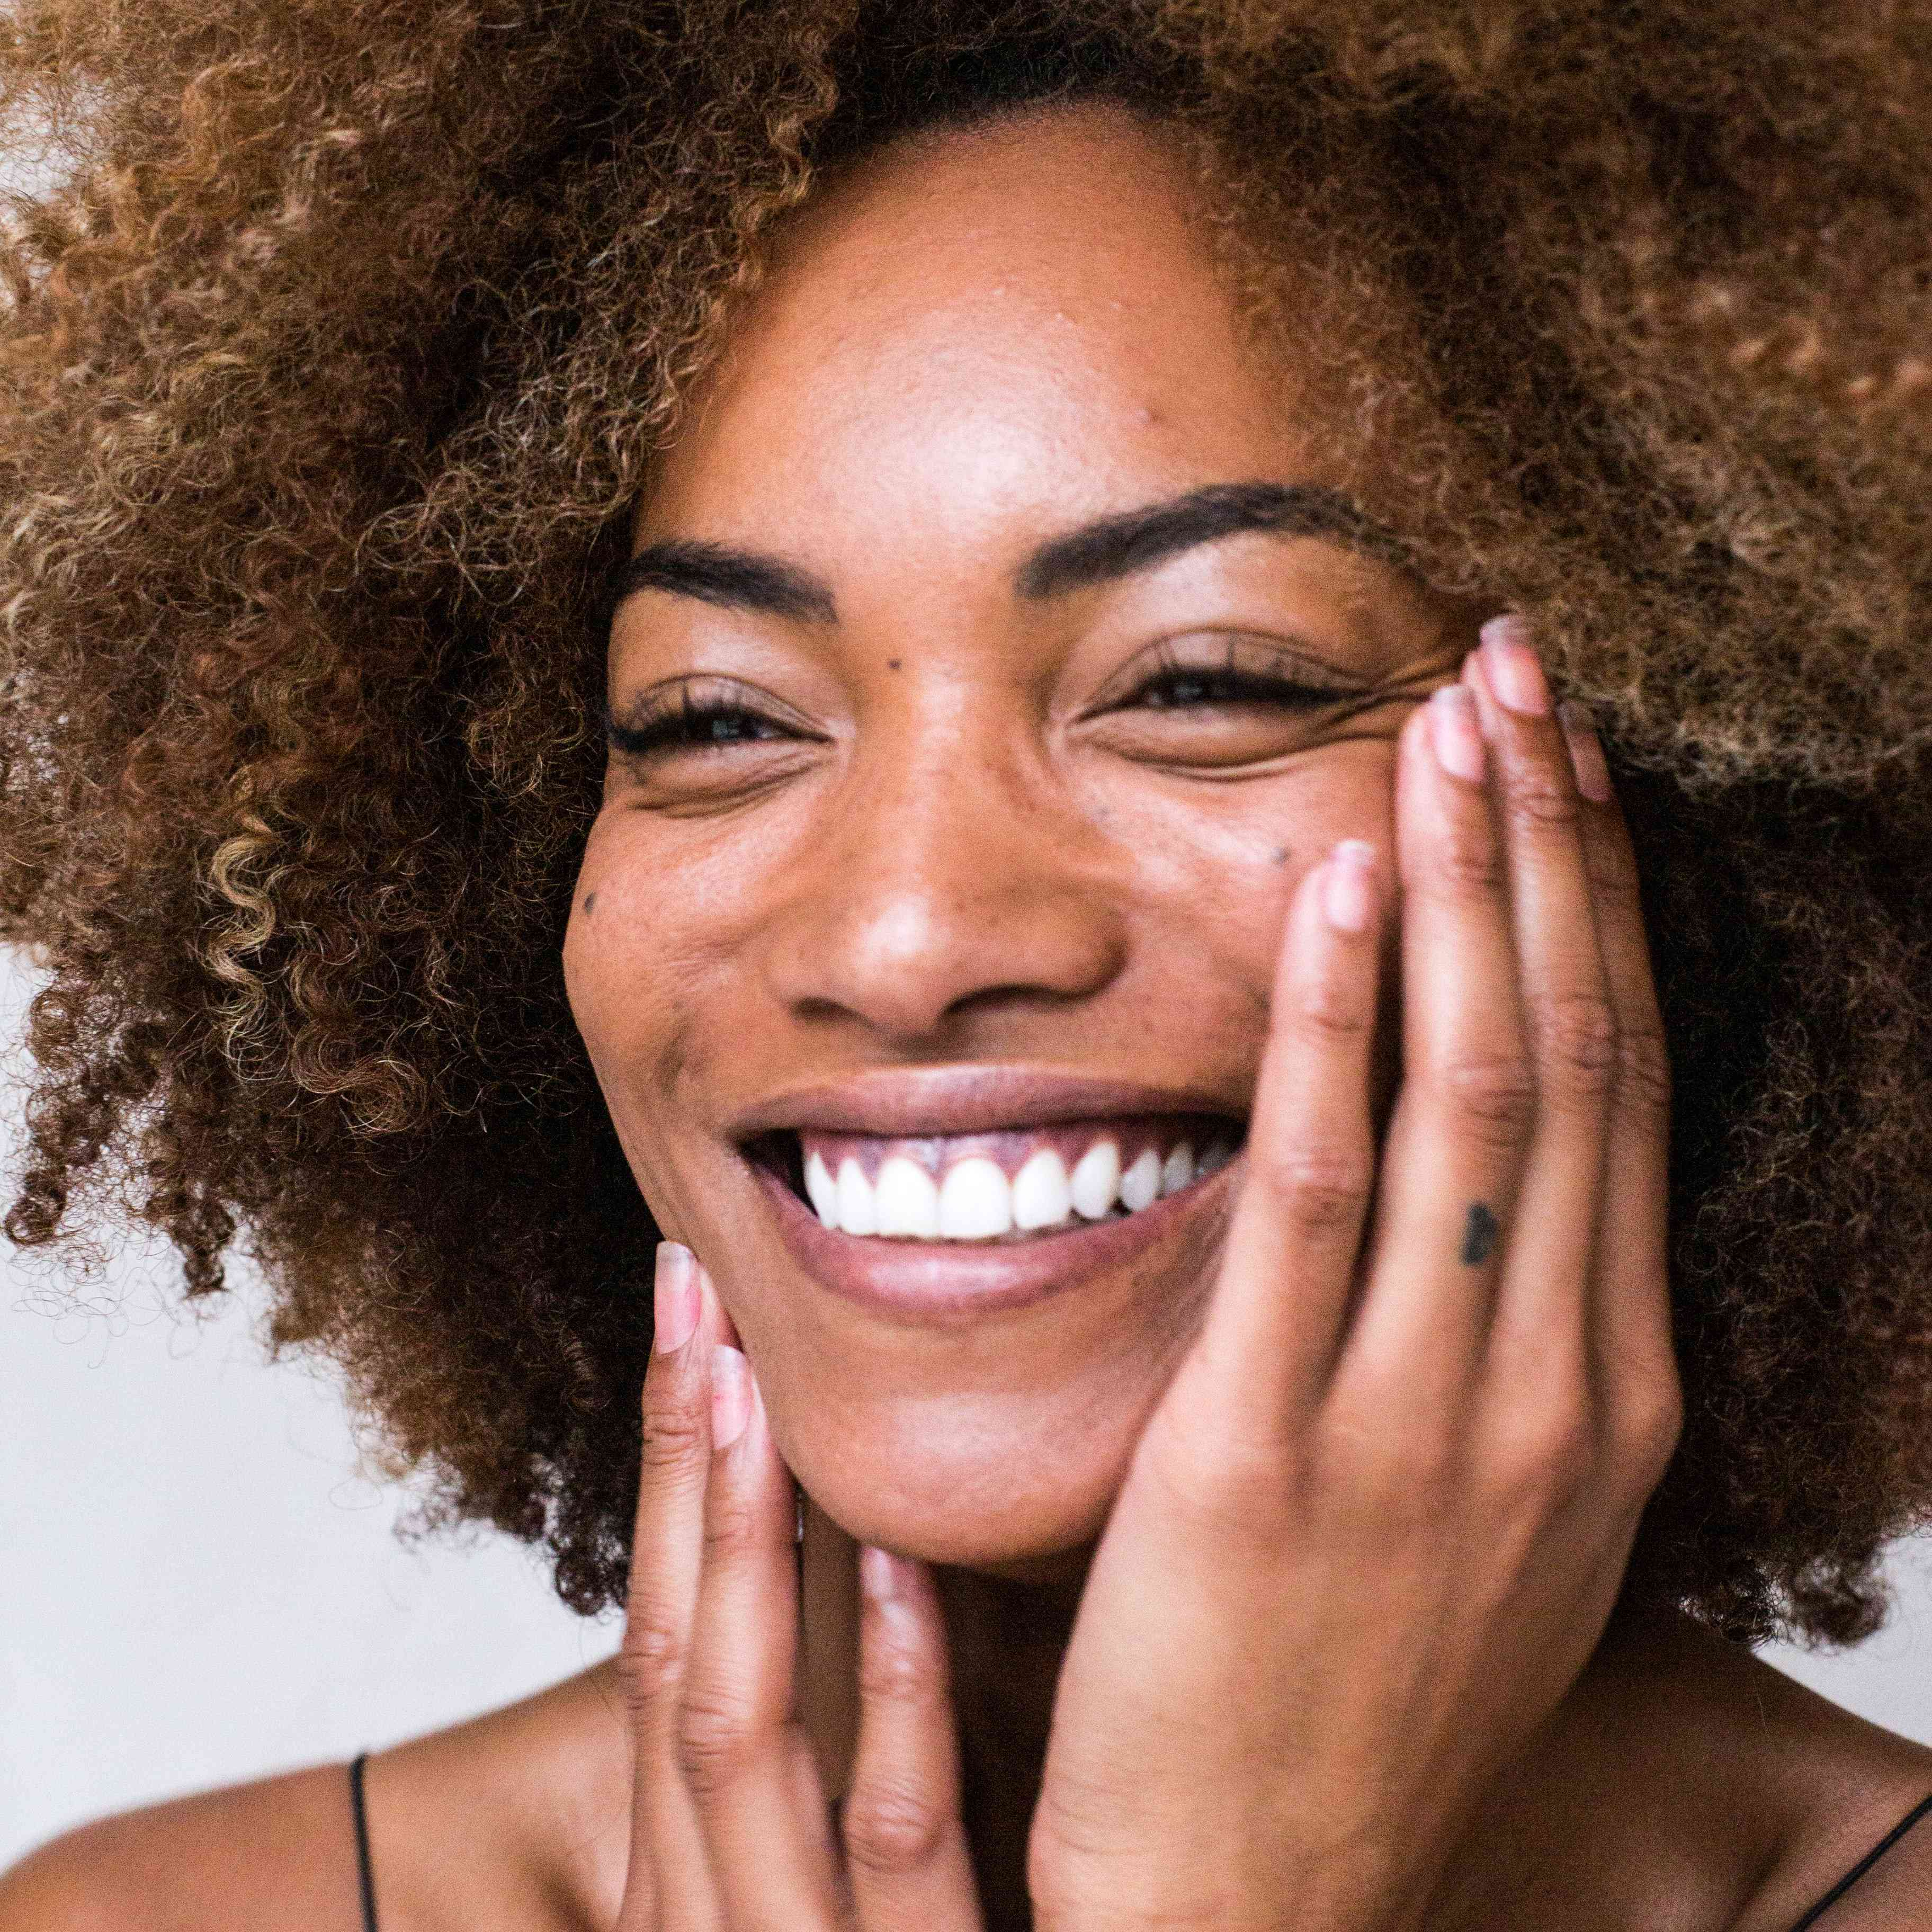 woman with glowy skin and curly hair smiling and touching her face